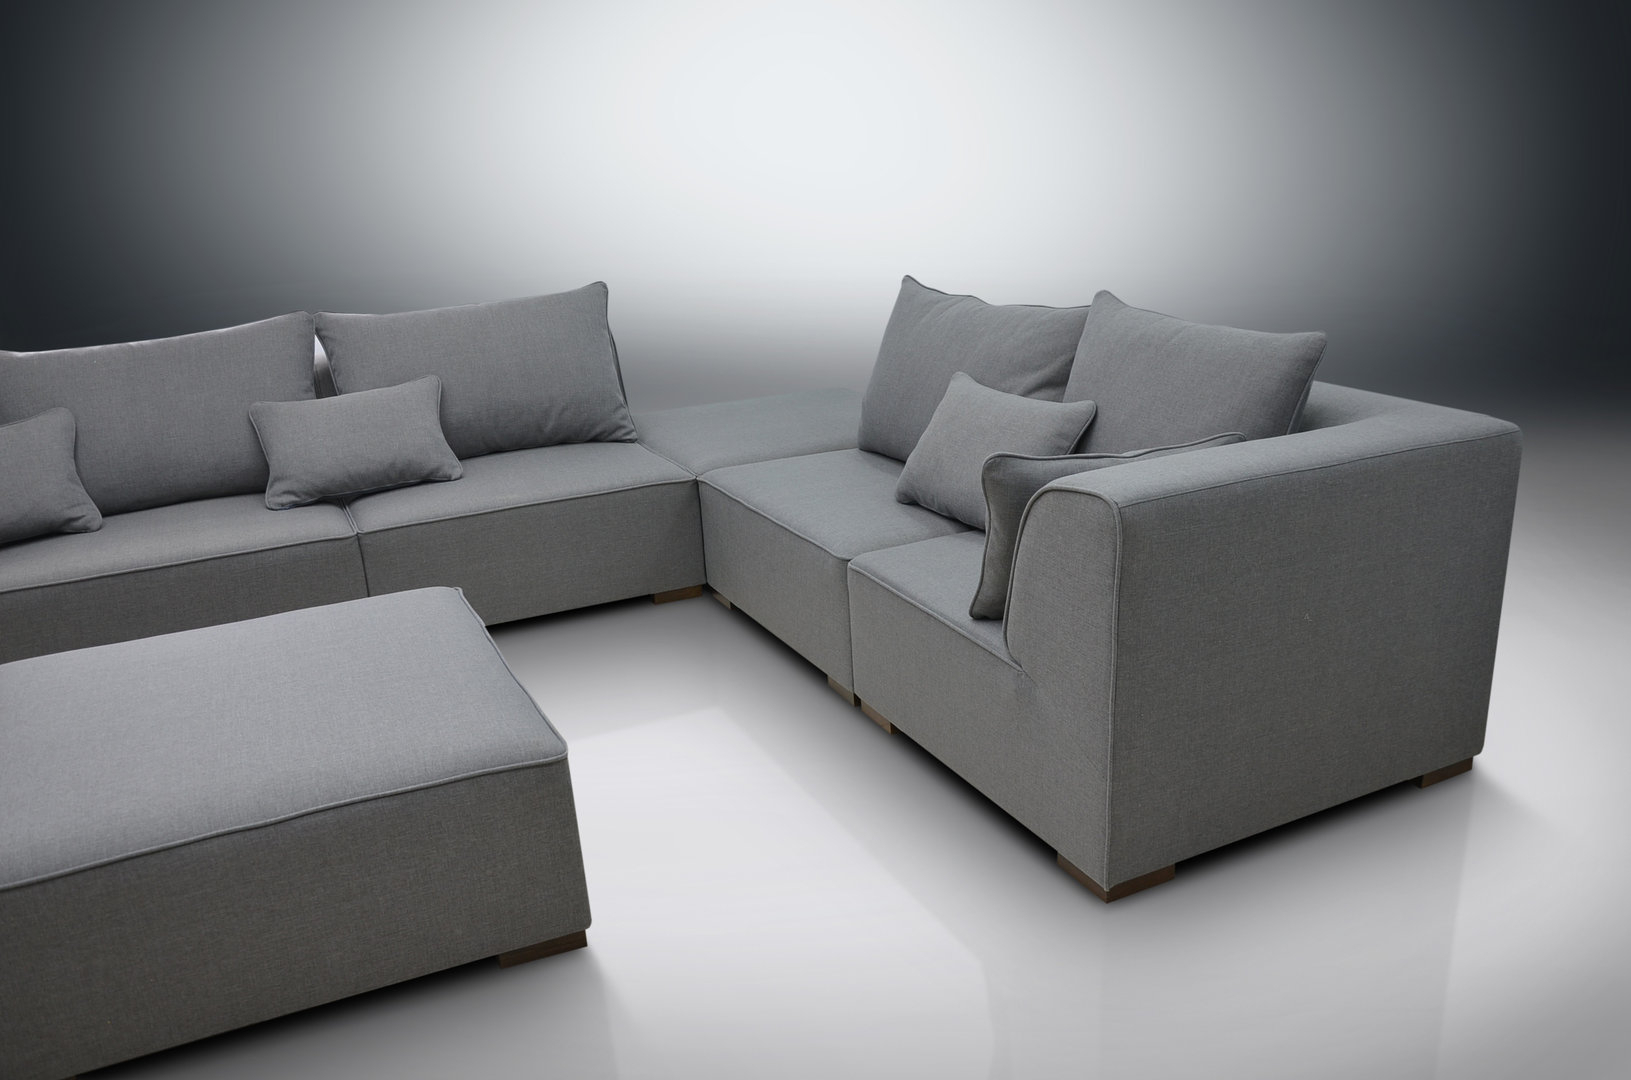 Modular Sofa Primo, 2Xcorners, 3Xchairs, 2Xfootstools With Dream Navy 2 Piece Modular Sofas (View 8 of 15)